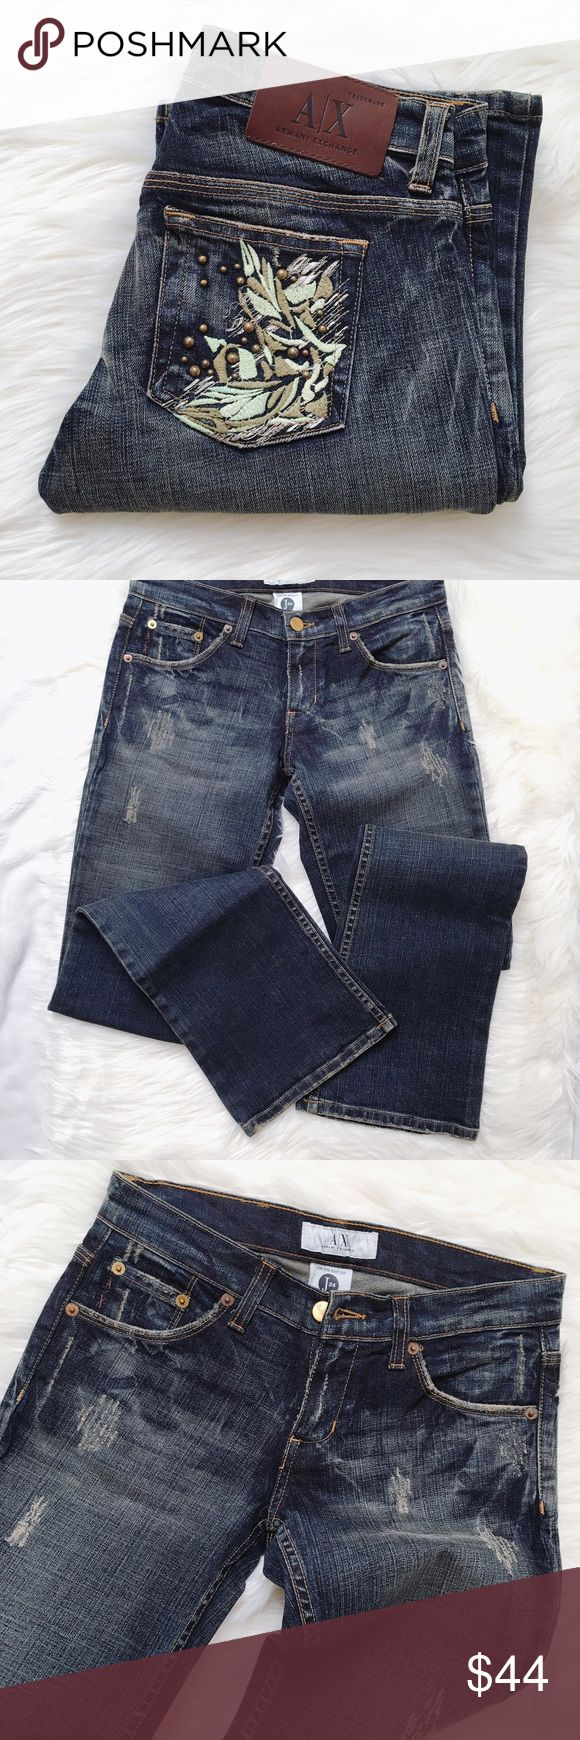 """Armani Exchange low rise boot cut jeans Boot cut jeans in excellent condition. Waist is 13 1/2"""" across and 31"""" inseam. Armani Exchange Jeans Boot Cut"""